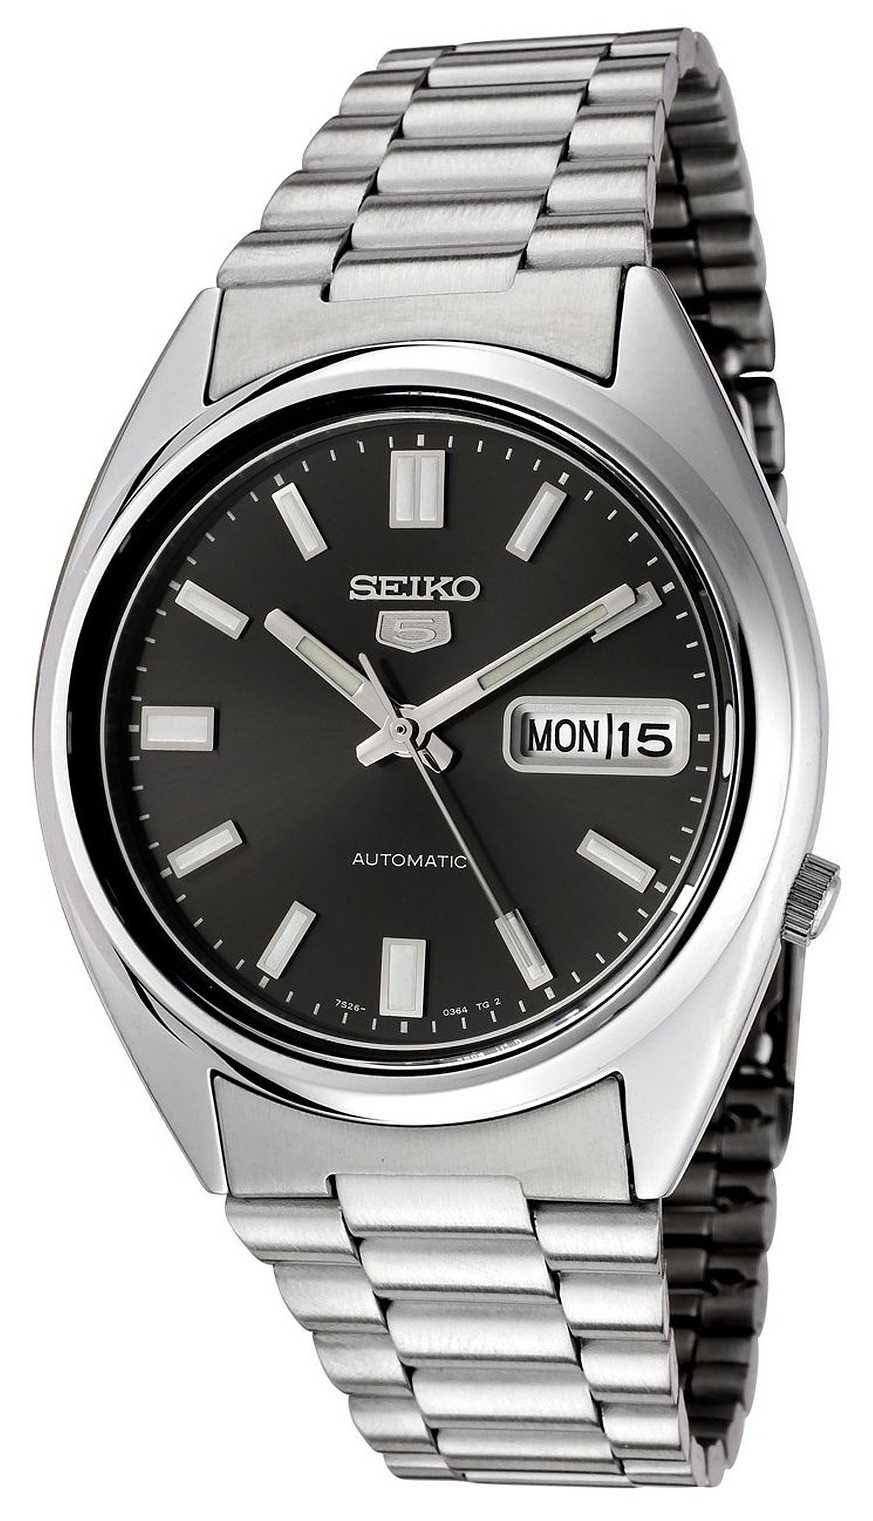 Seiko SNXS79K - 5 Gent Men's Automatic Analogue Watch